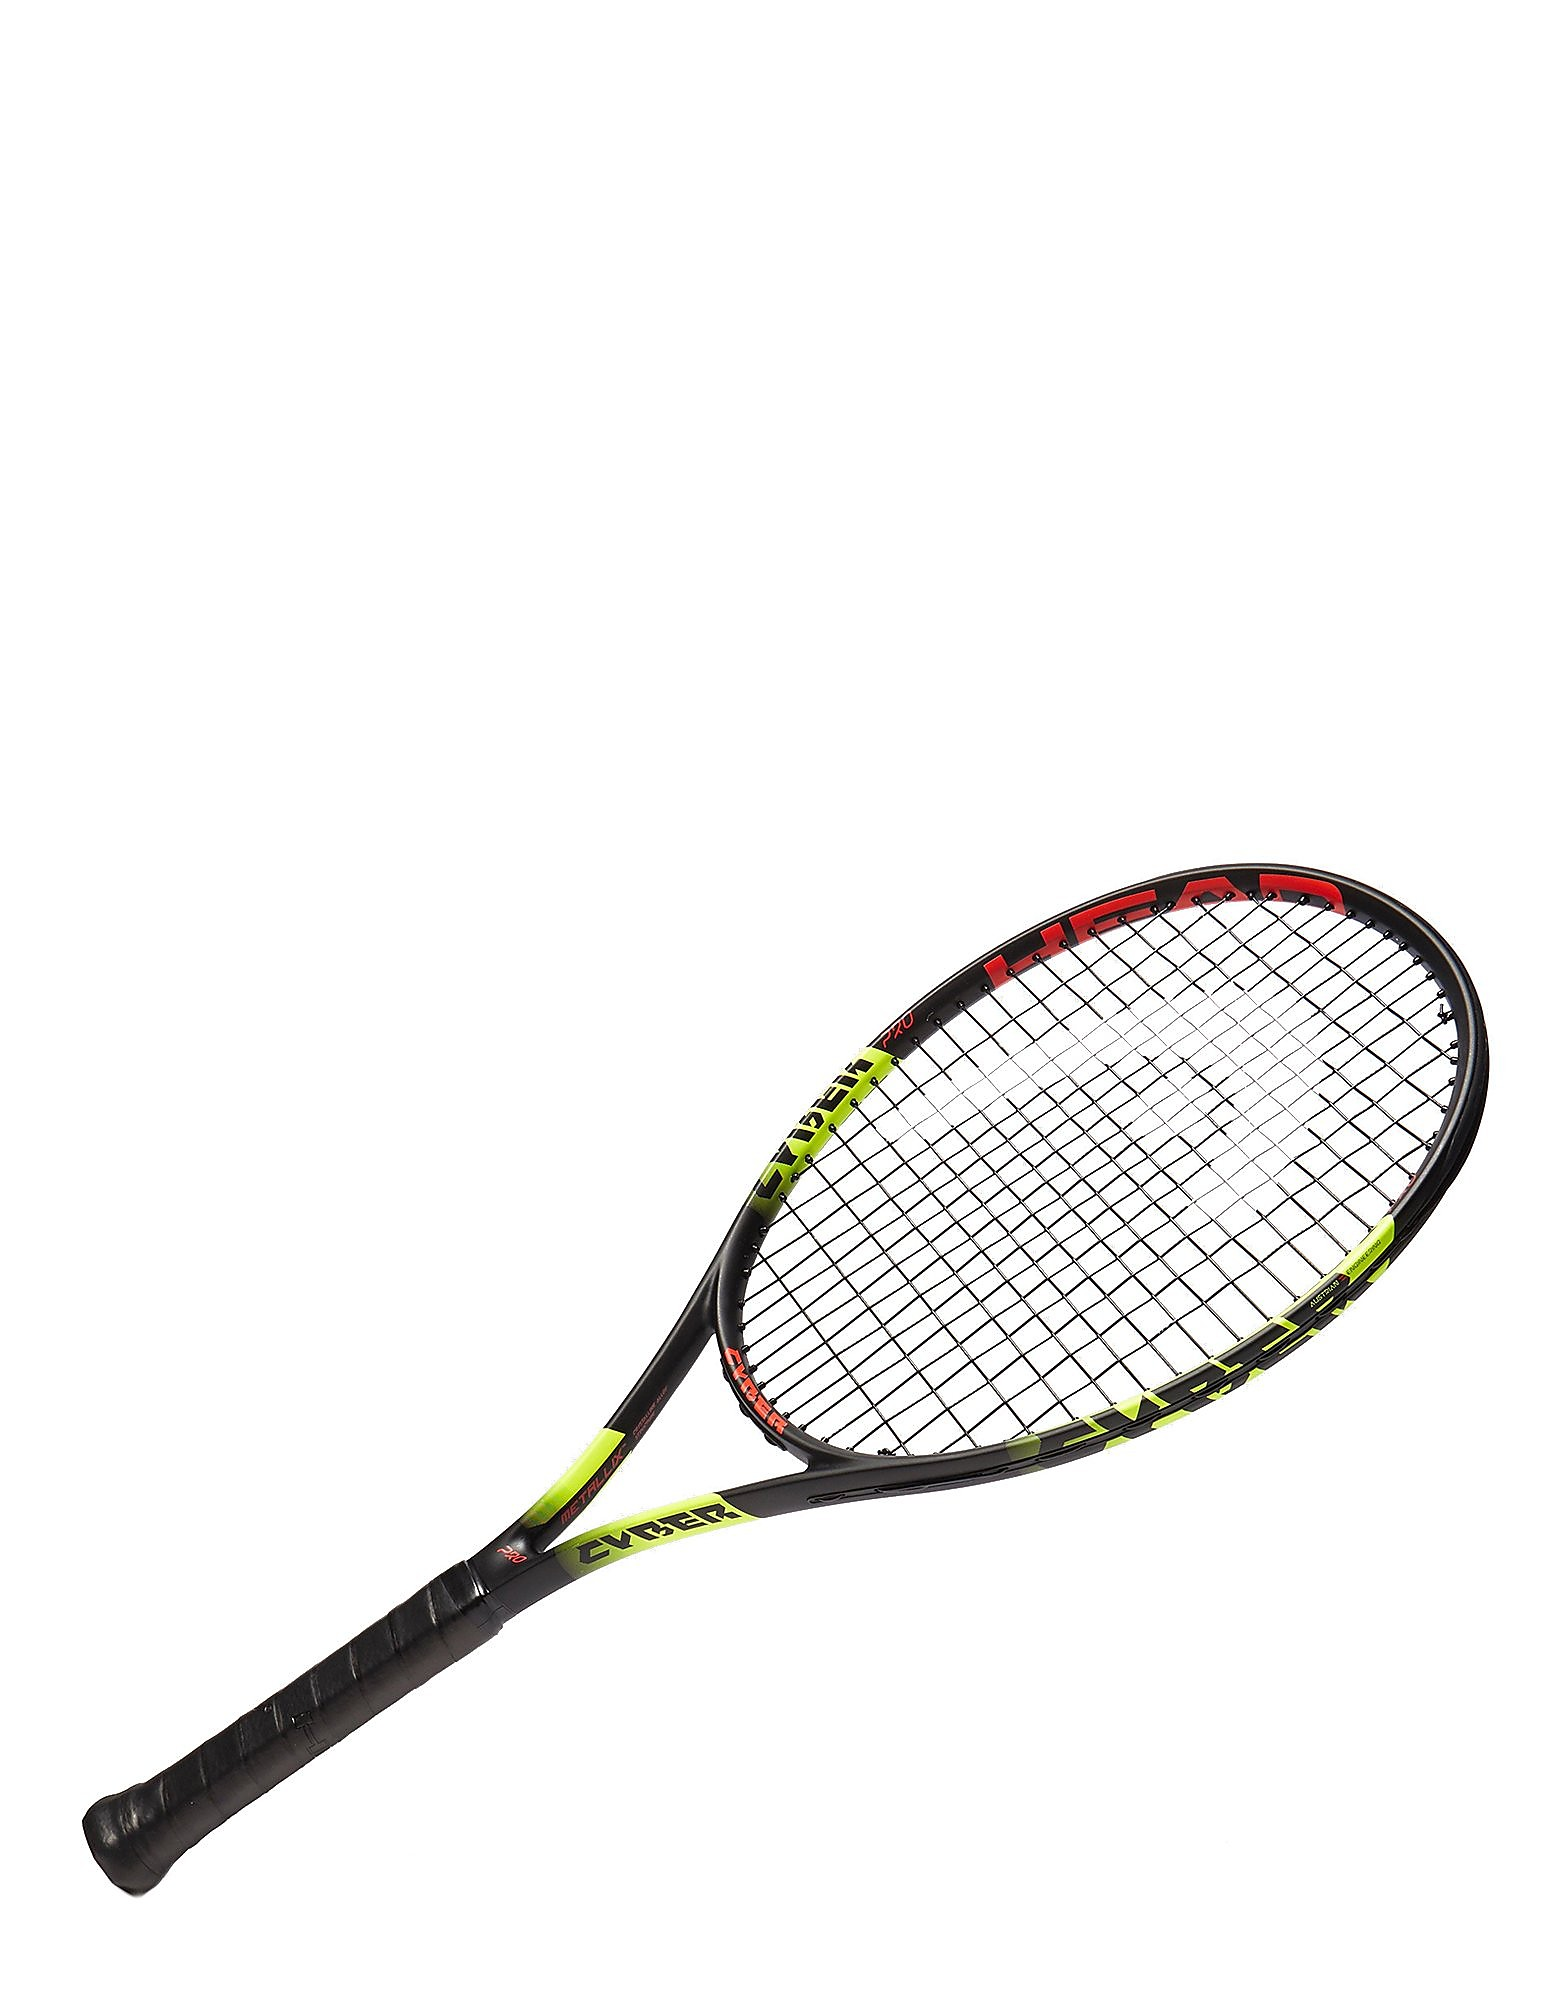 Head Cyber Pro Tennis Racket